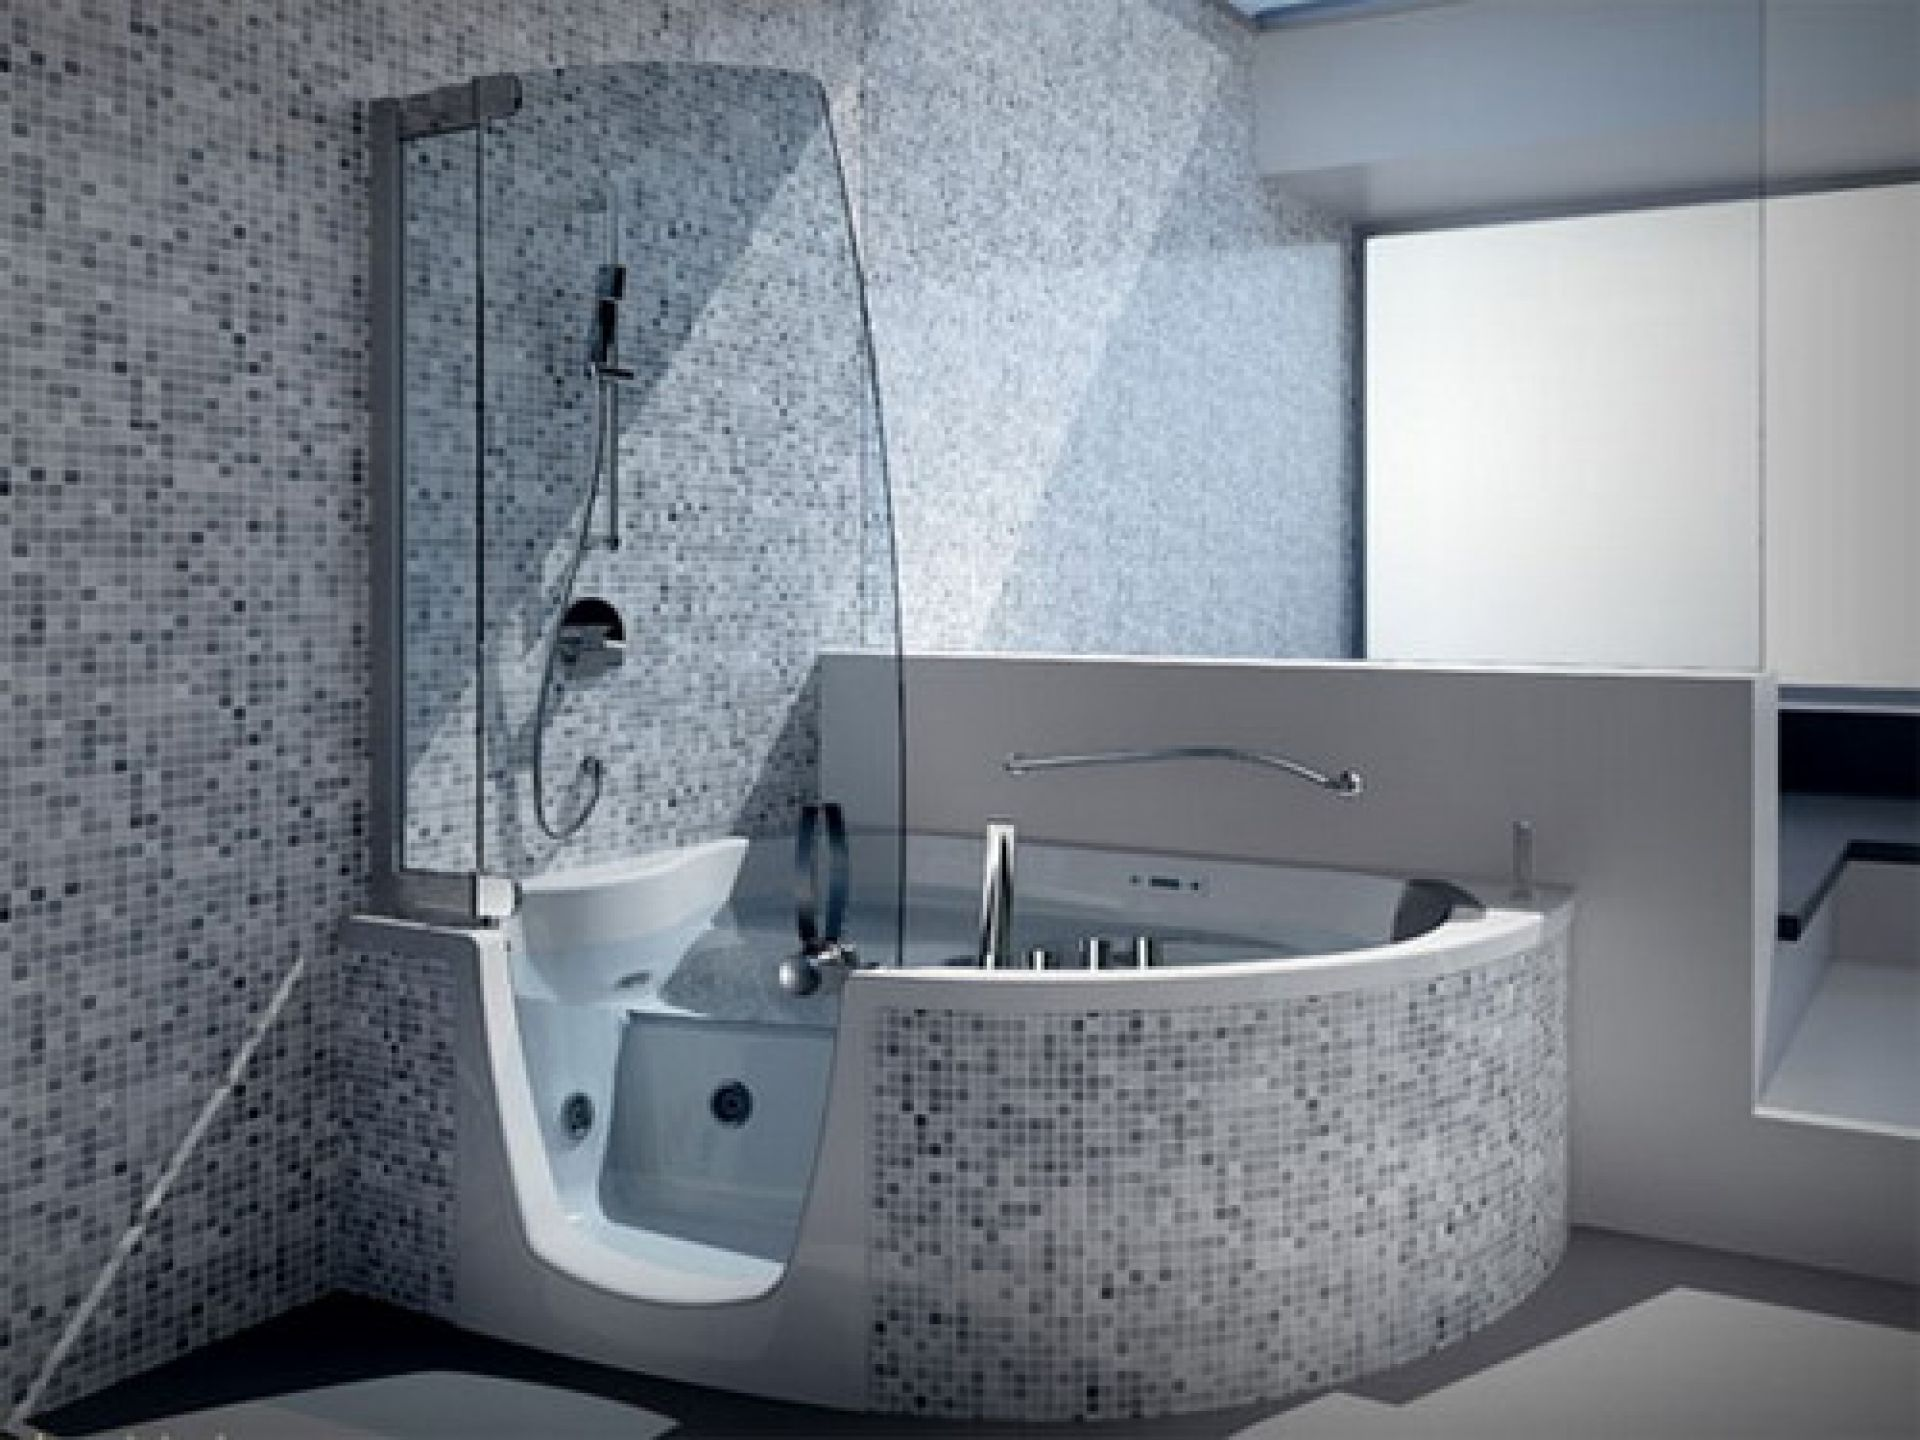 Splendid Corner Step-in Whirlpool Tub With Modern Steam Shower Tub ...